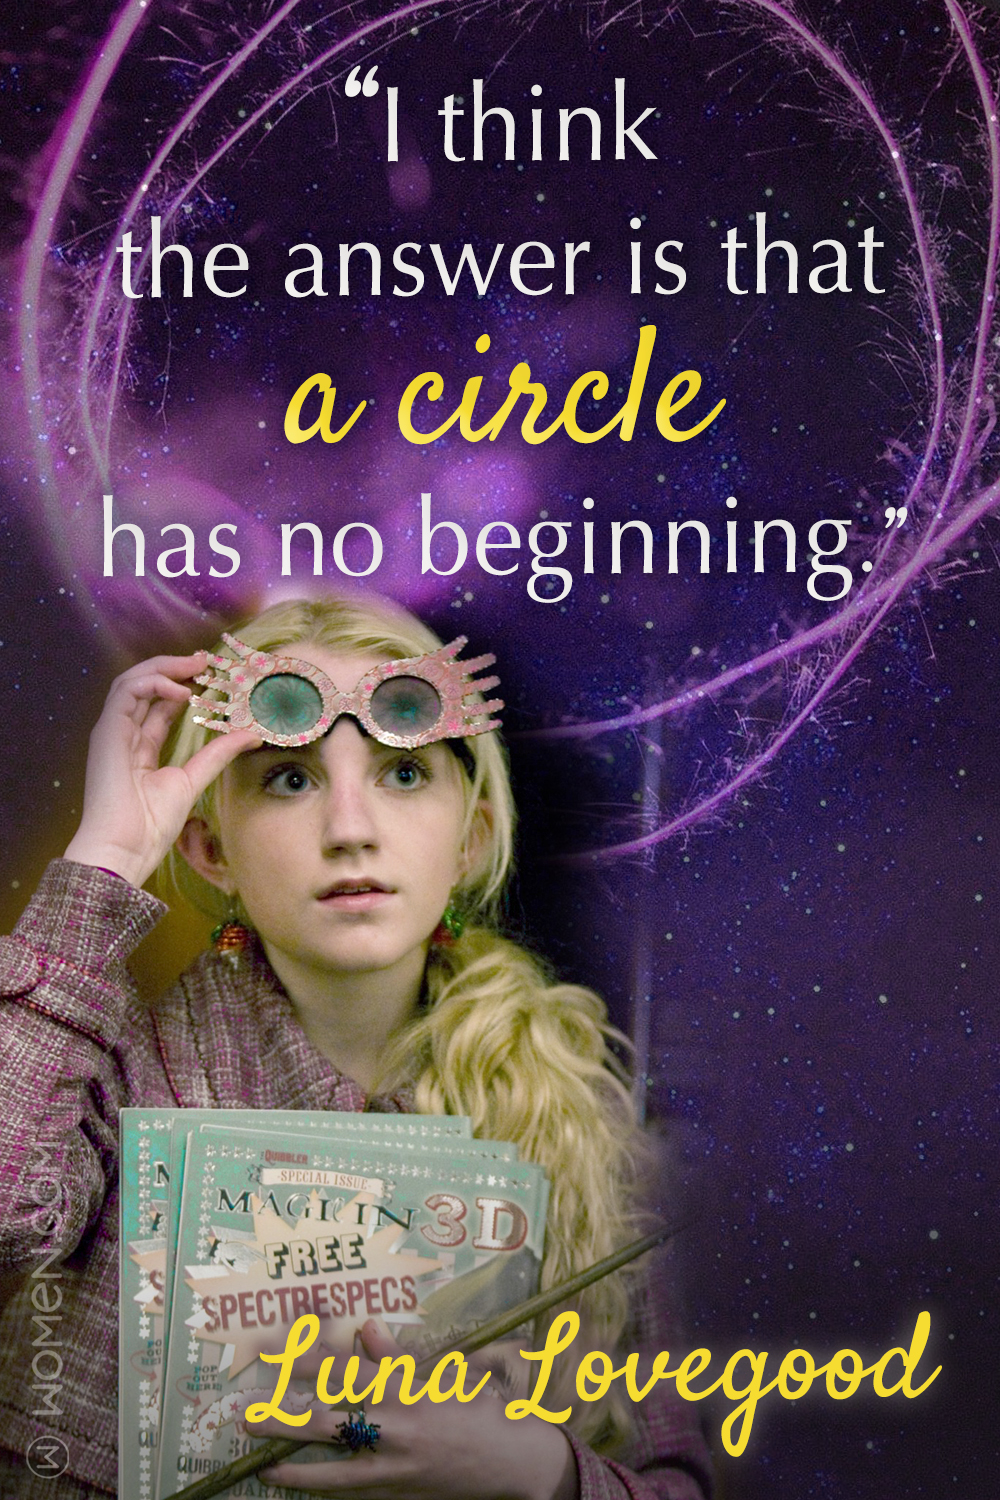 Luna lovegood quotes, 10 Luna Lovegood Quotes That'll Prove You're Just As Sane As She Is